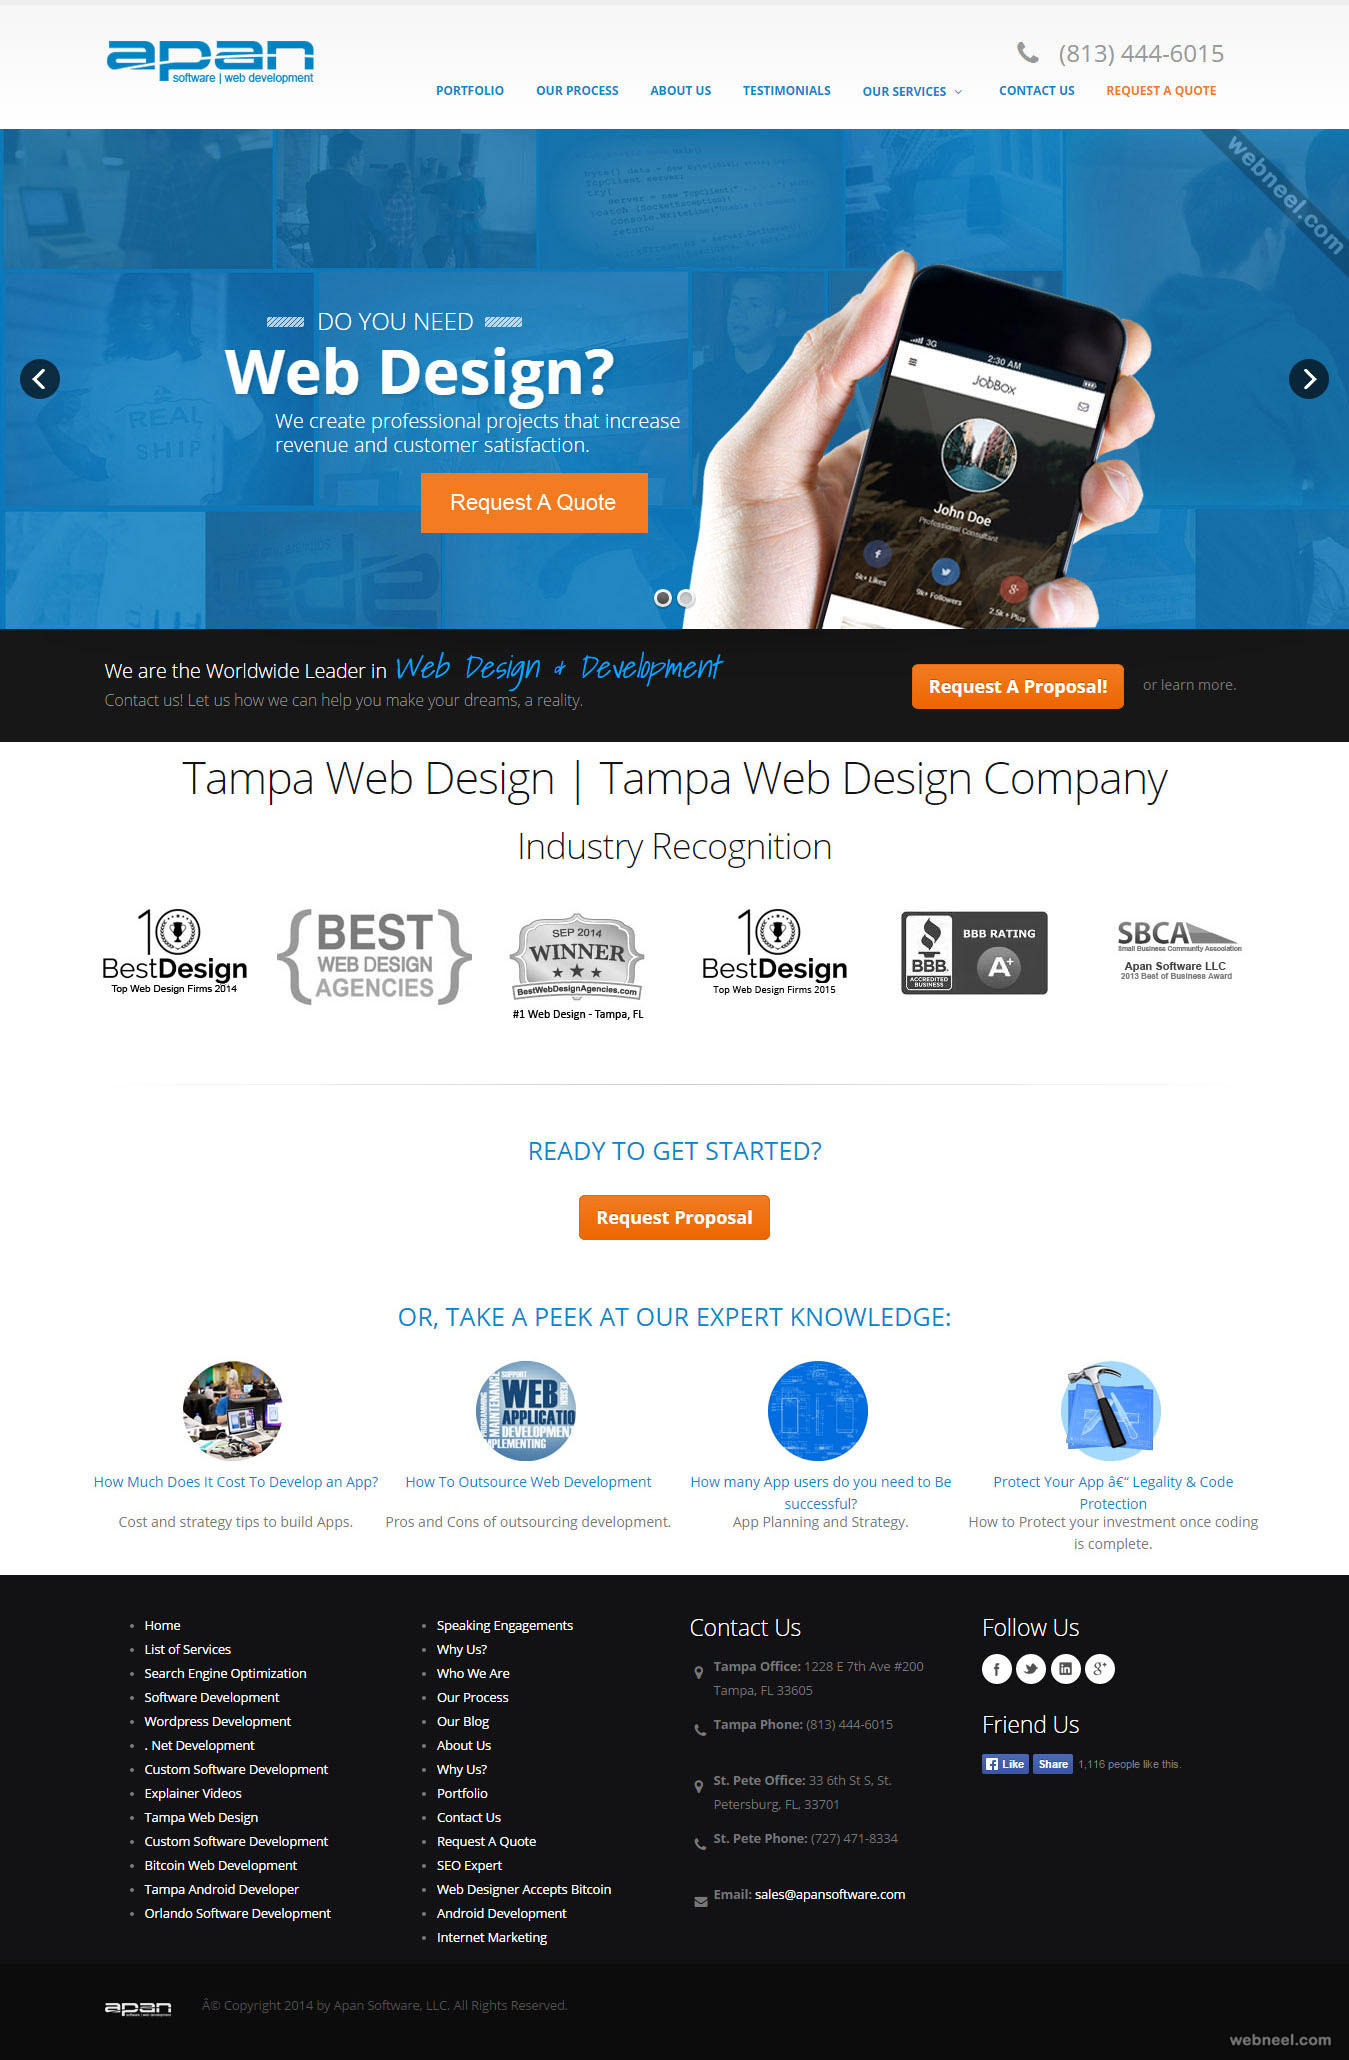 Top Design Company Tampa Web Design Florida 8 Full Image